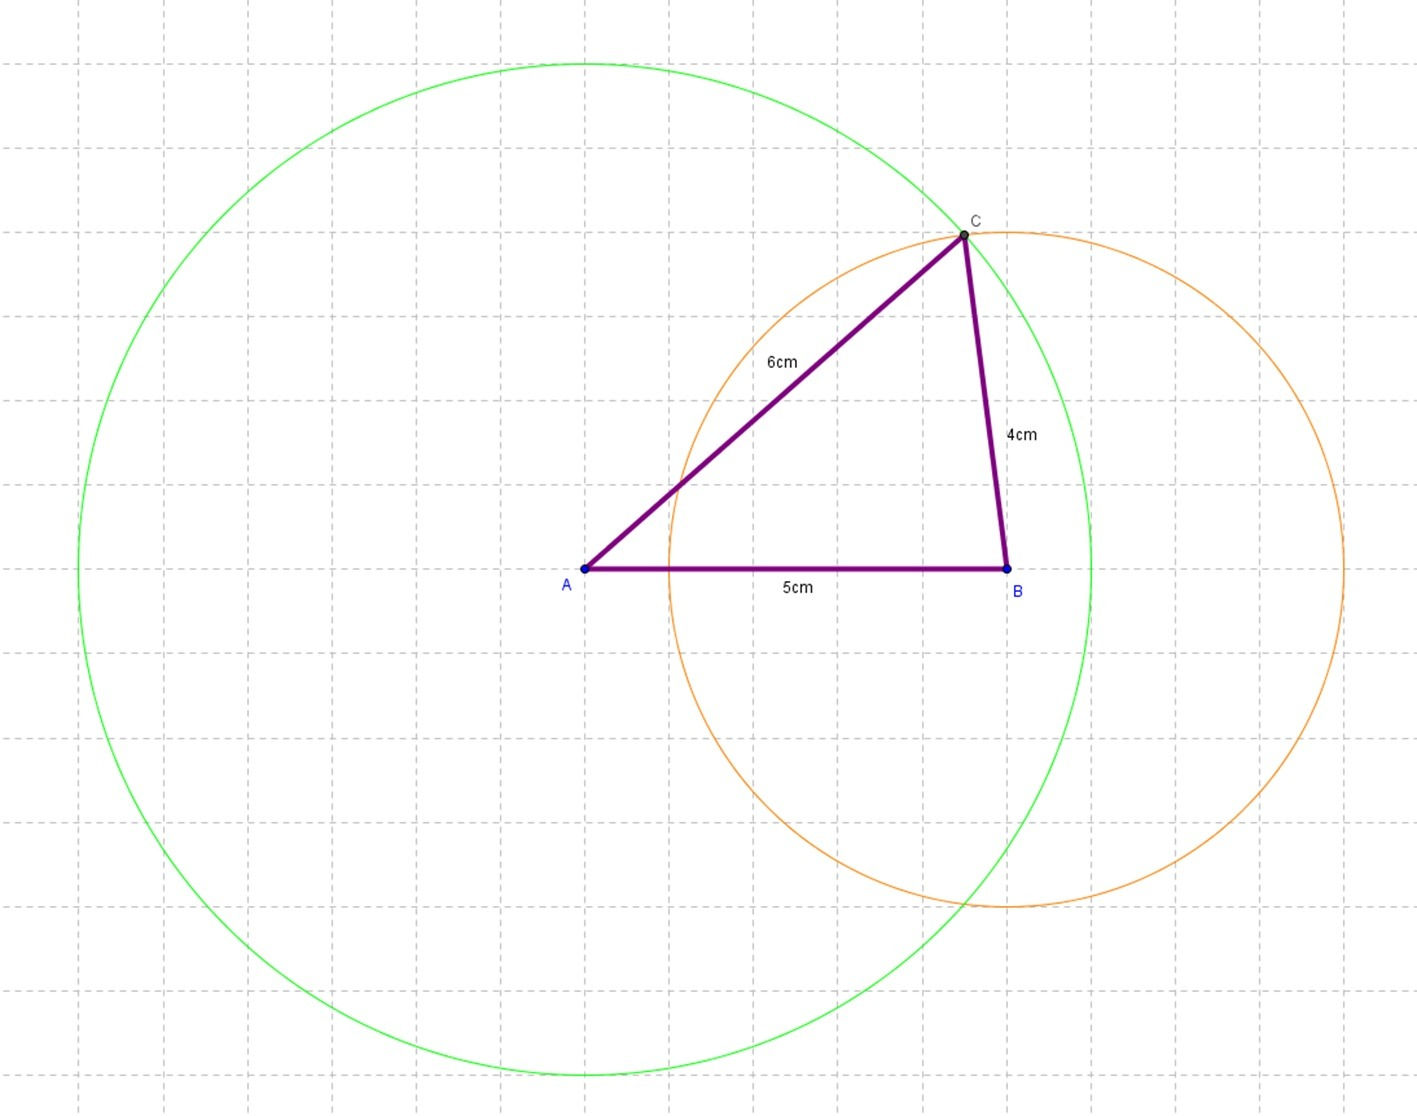 Constructing Scalene Triangle